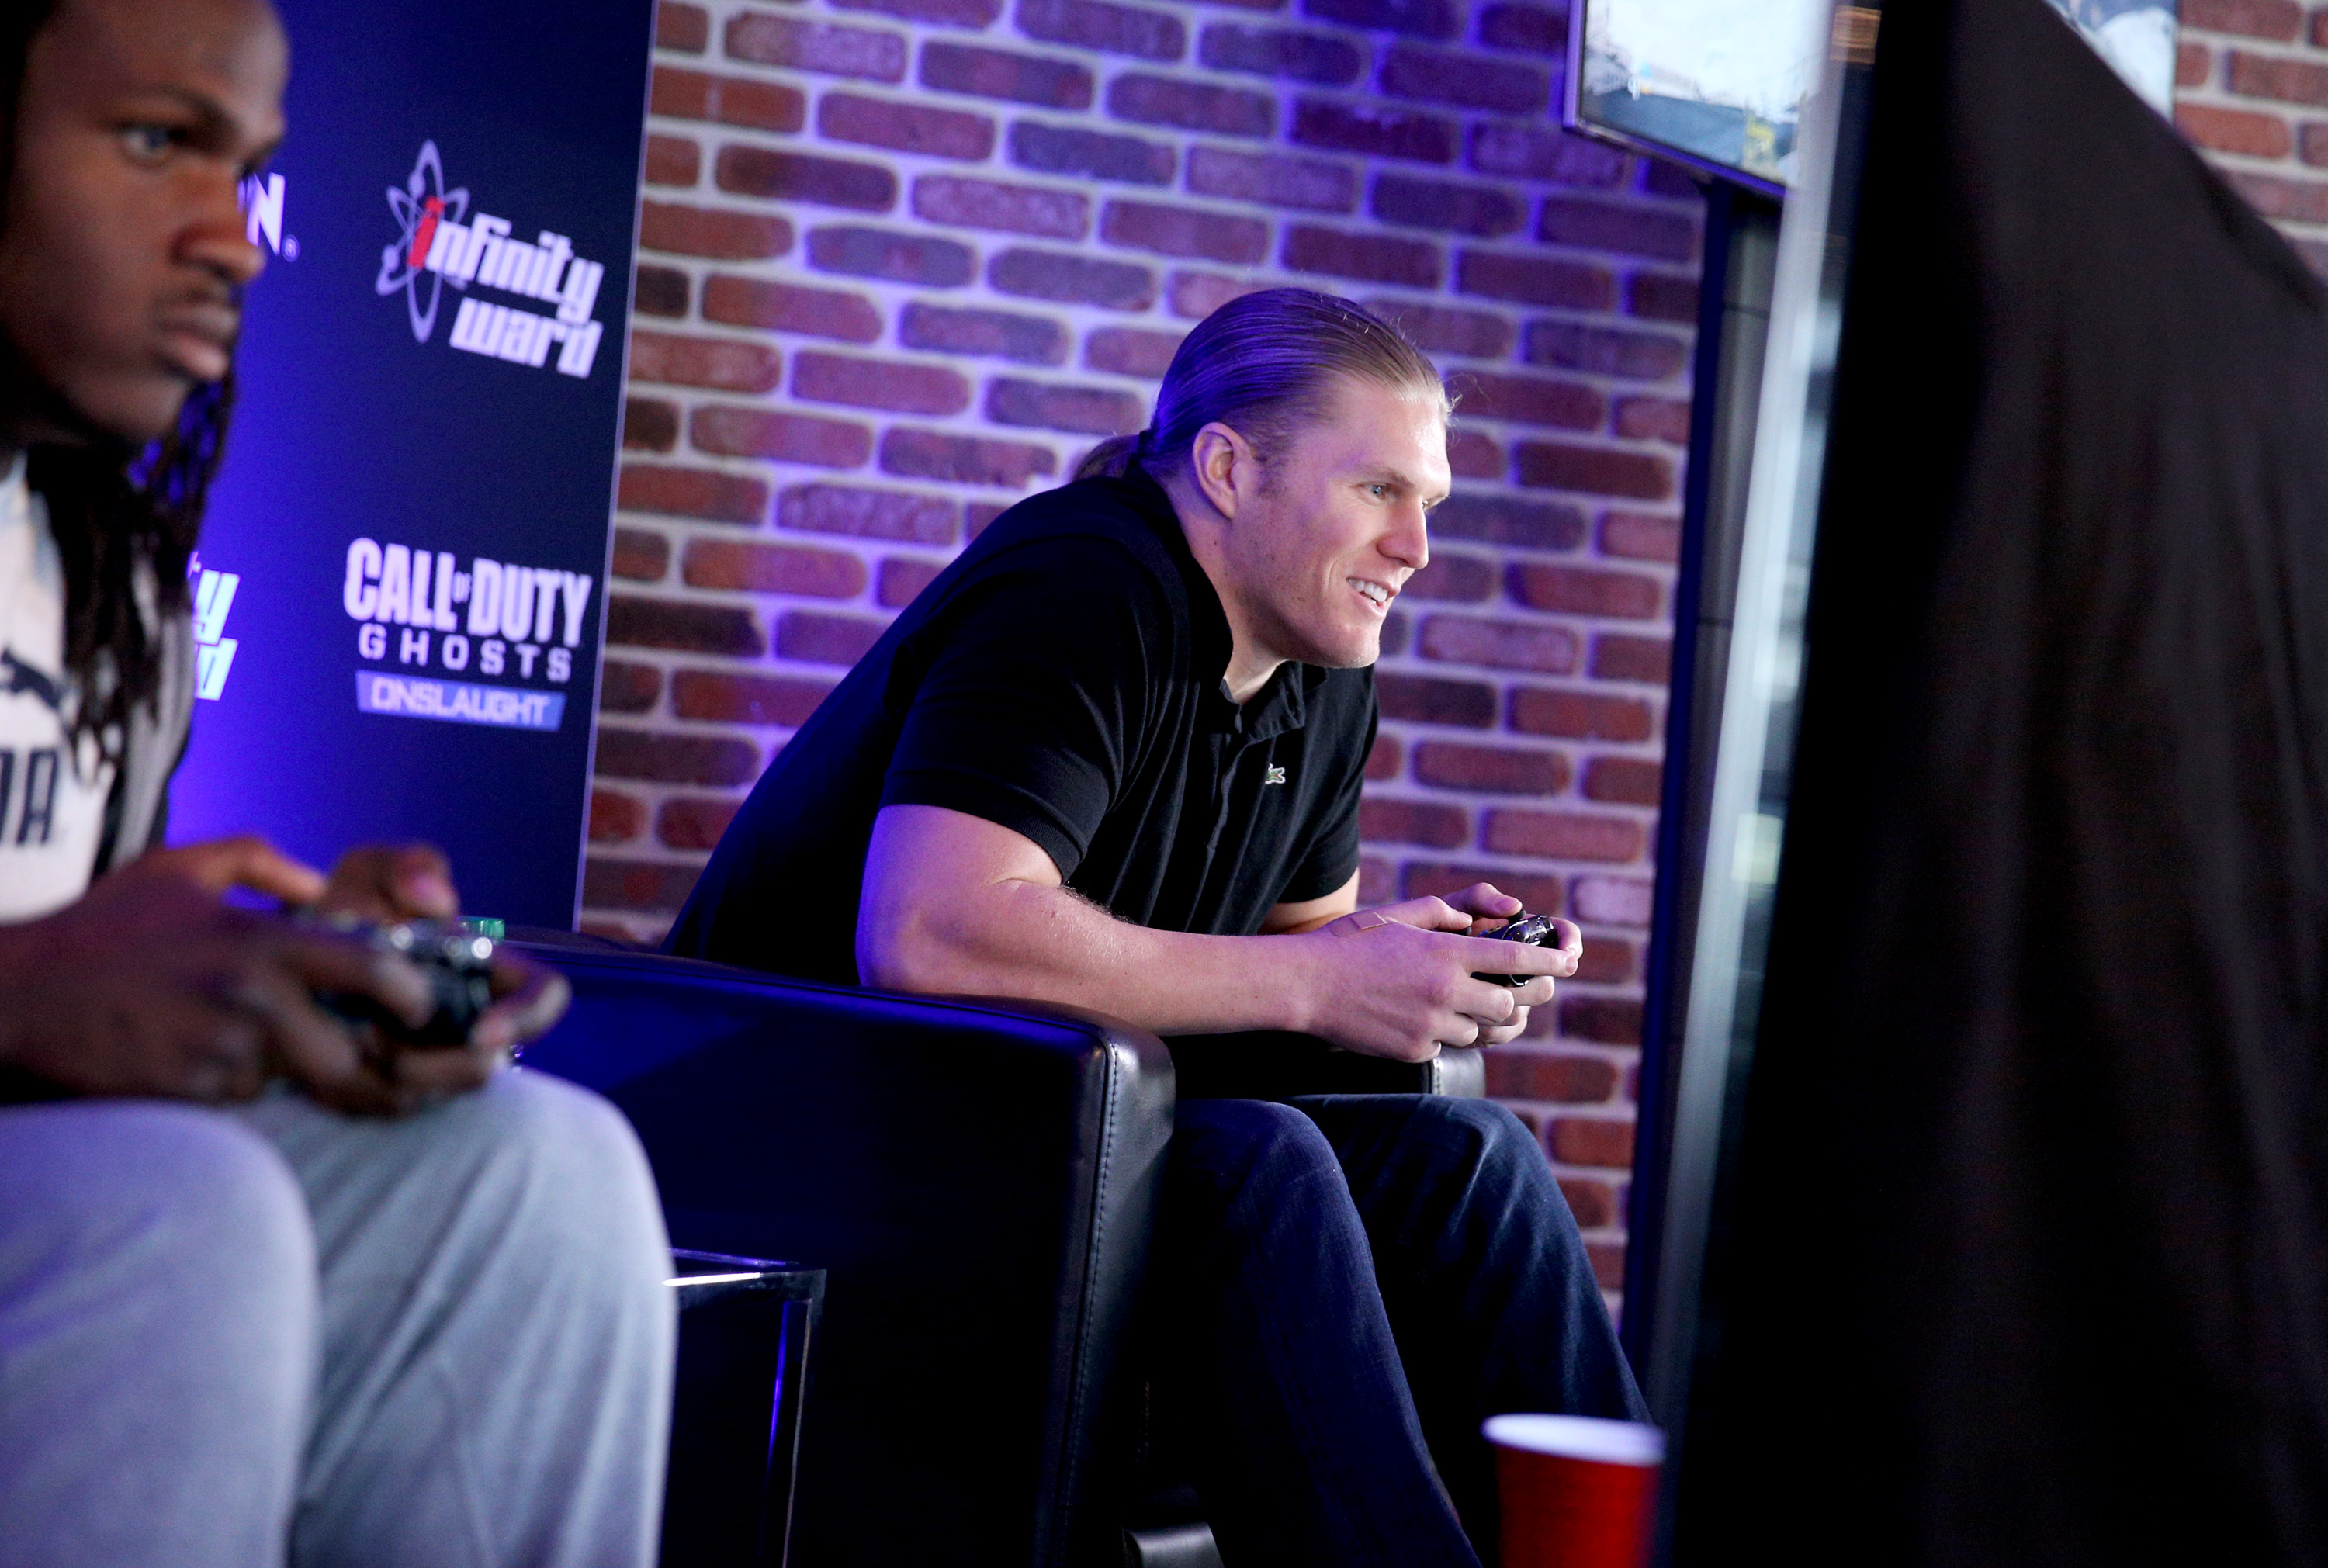 All-Pro NFL Running Back Jamaal Charles Of The Kansas City Chiefs Goes Head-To-Head Against Linebacker Clay Matthews Of The Green Bay Packers For The Call of Duty: Ghosts Celebrity Grudge Match On Xbox One To Celebrate The Launch Of Onslaught DLC